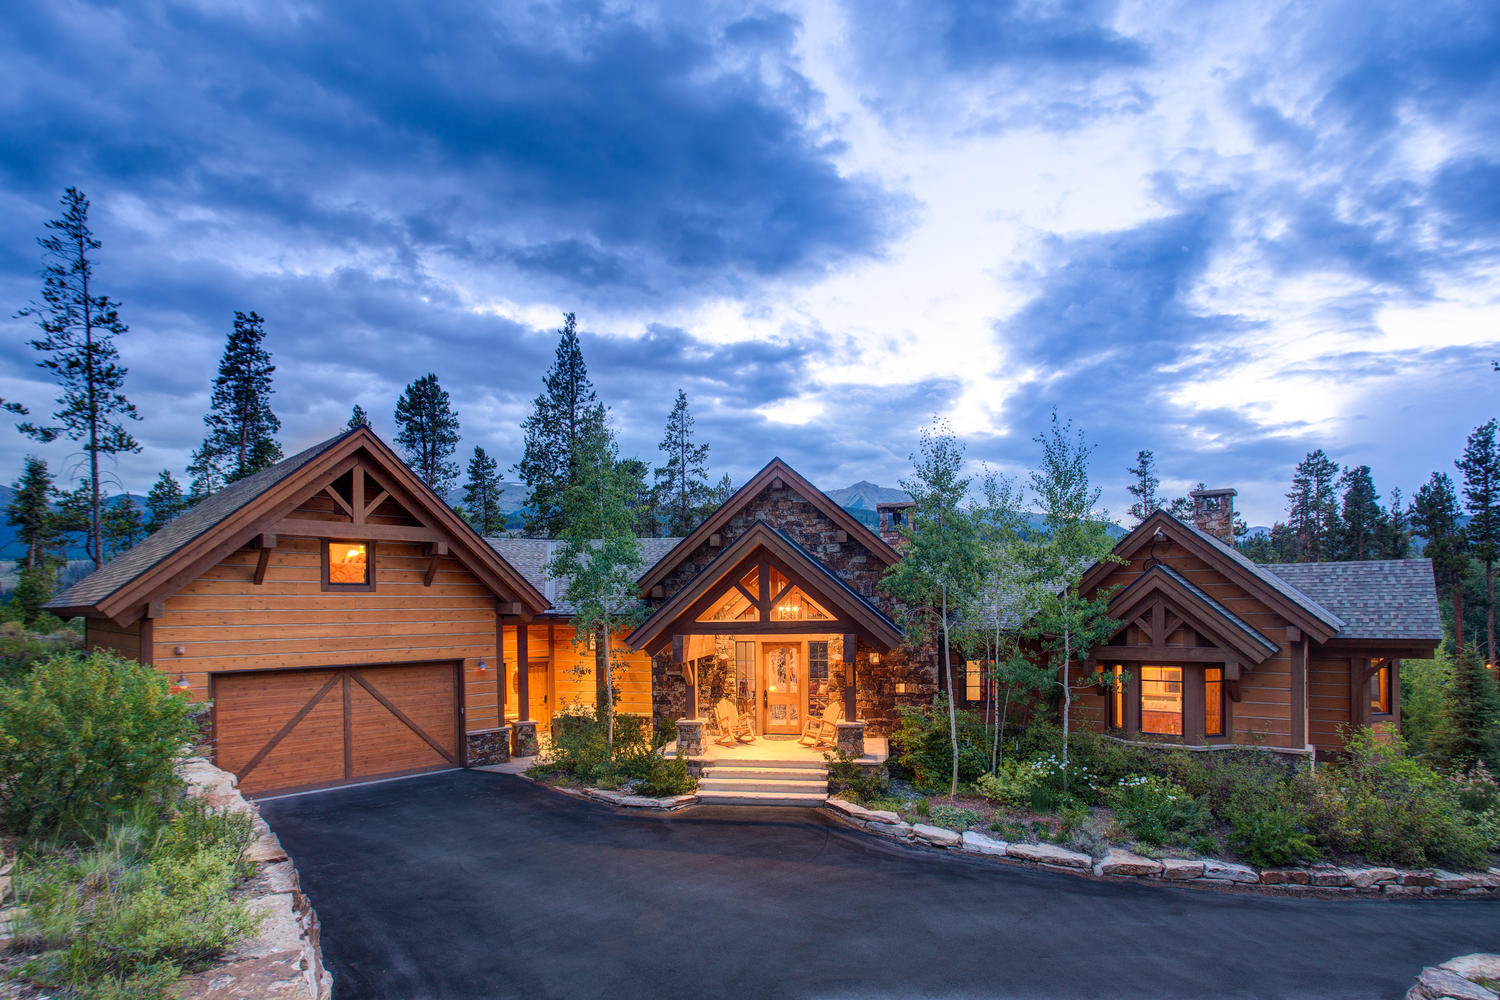 Single Family Home for Active at 493 Highfield Trail Breckenridge, Colorado 80424 United States